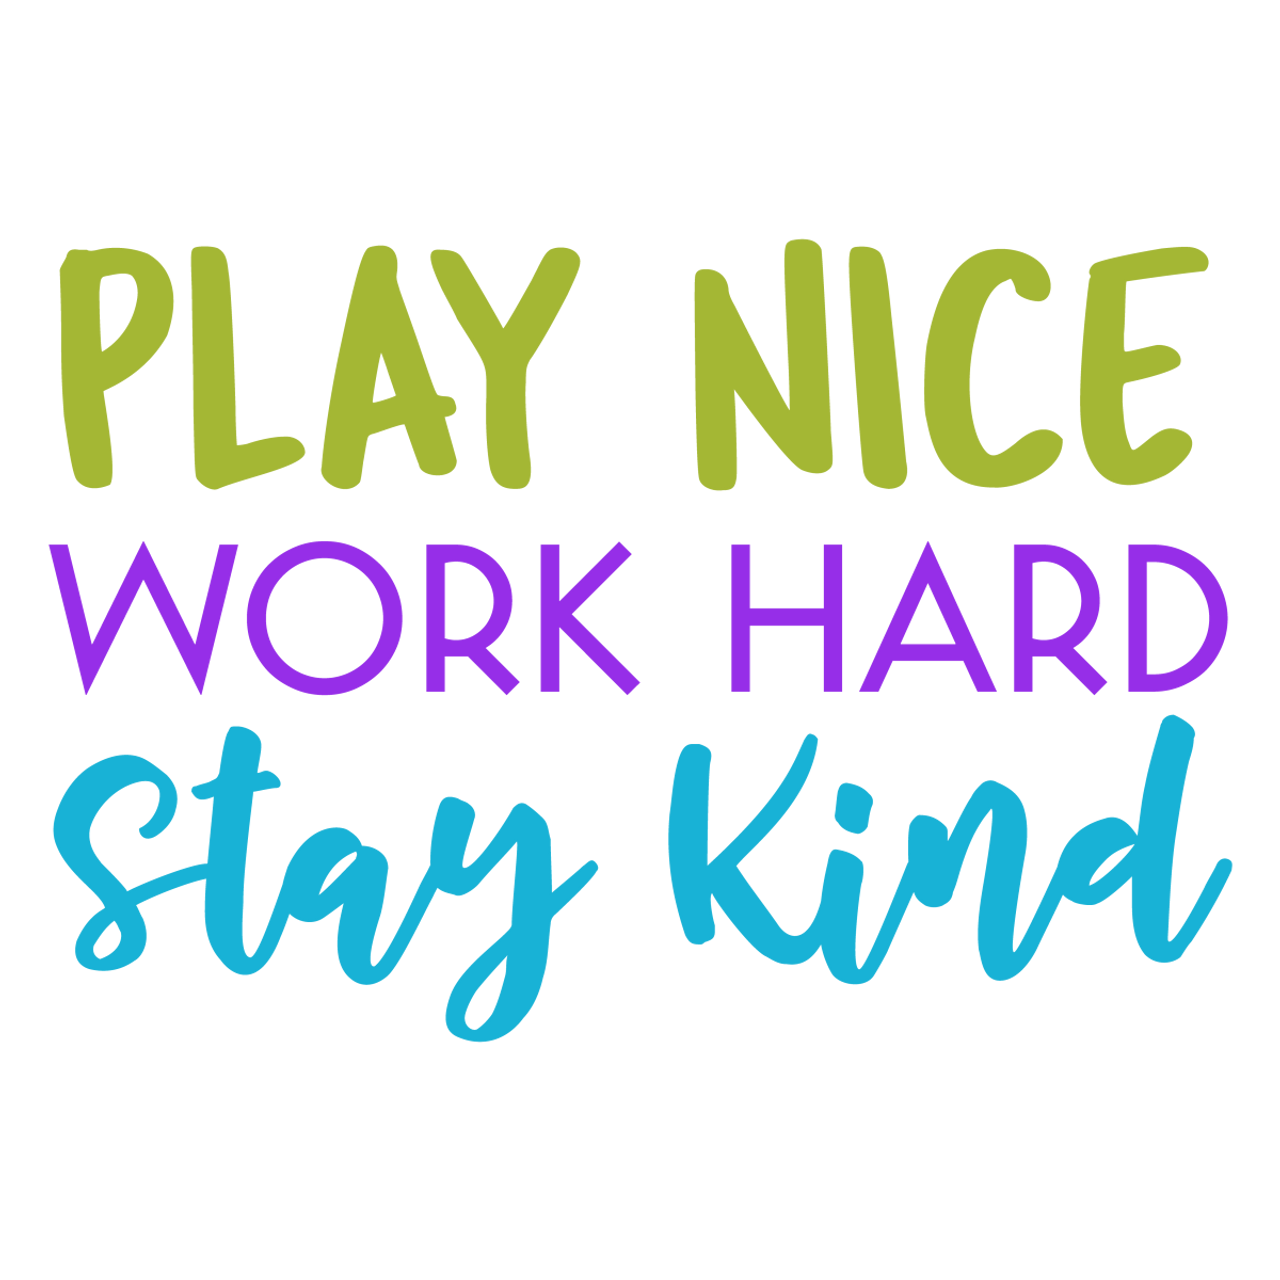 Play Nice Work Hard Stay Kind Svg Svg Eps Png Dxf Cut Files For Cricut And Silhouette Cameo By Savanasdesign